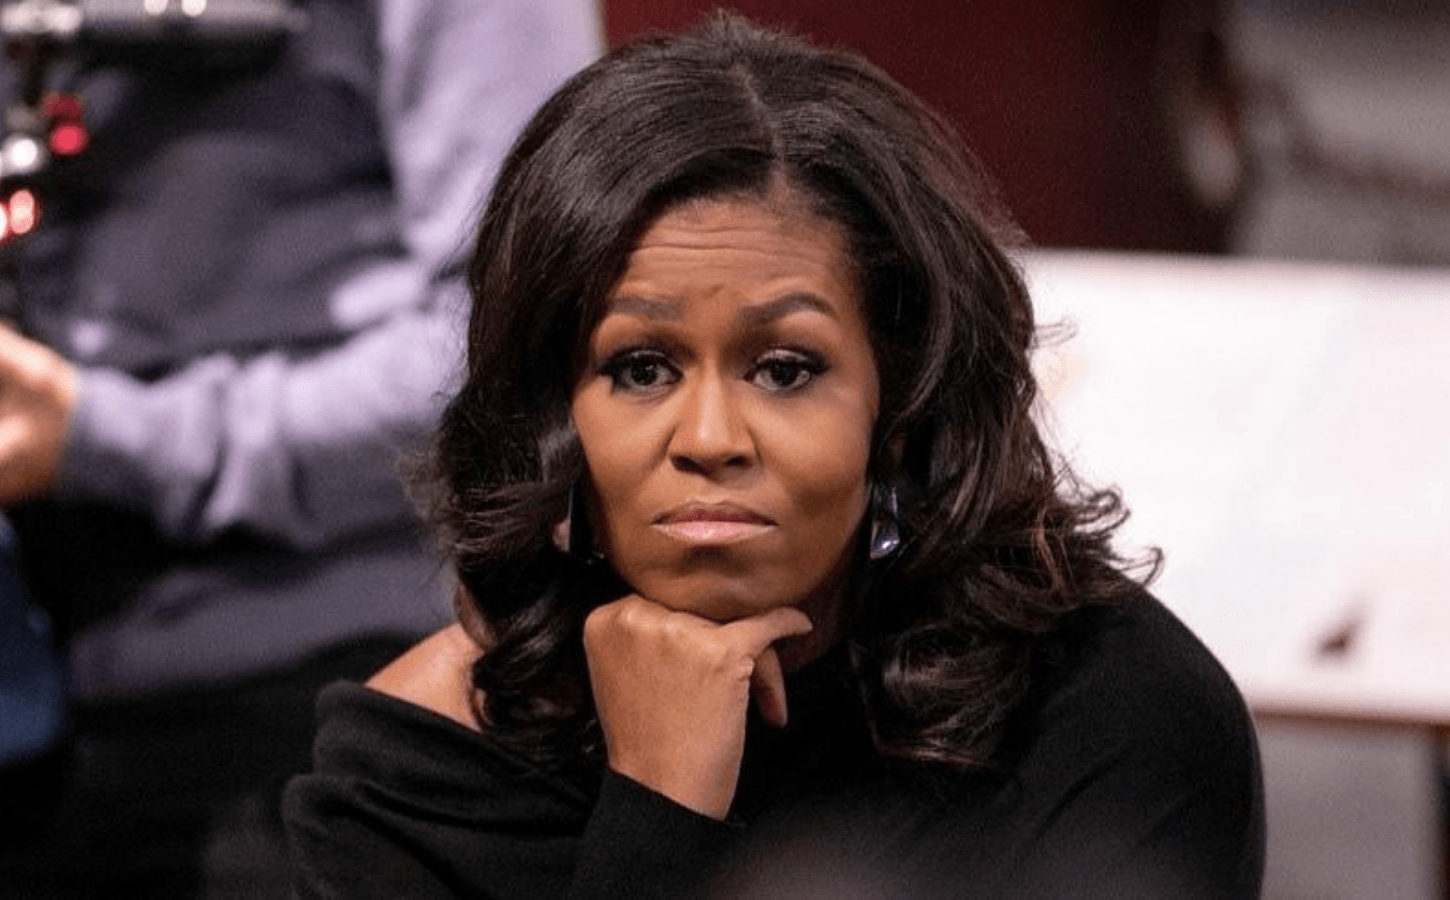 Michelle Obama Suffers a 'low-grade depression' triggered by Trump's 'hypocrisy'